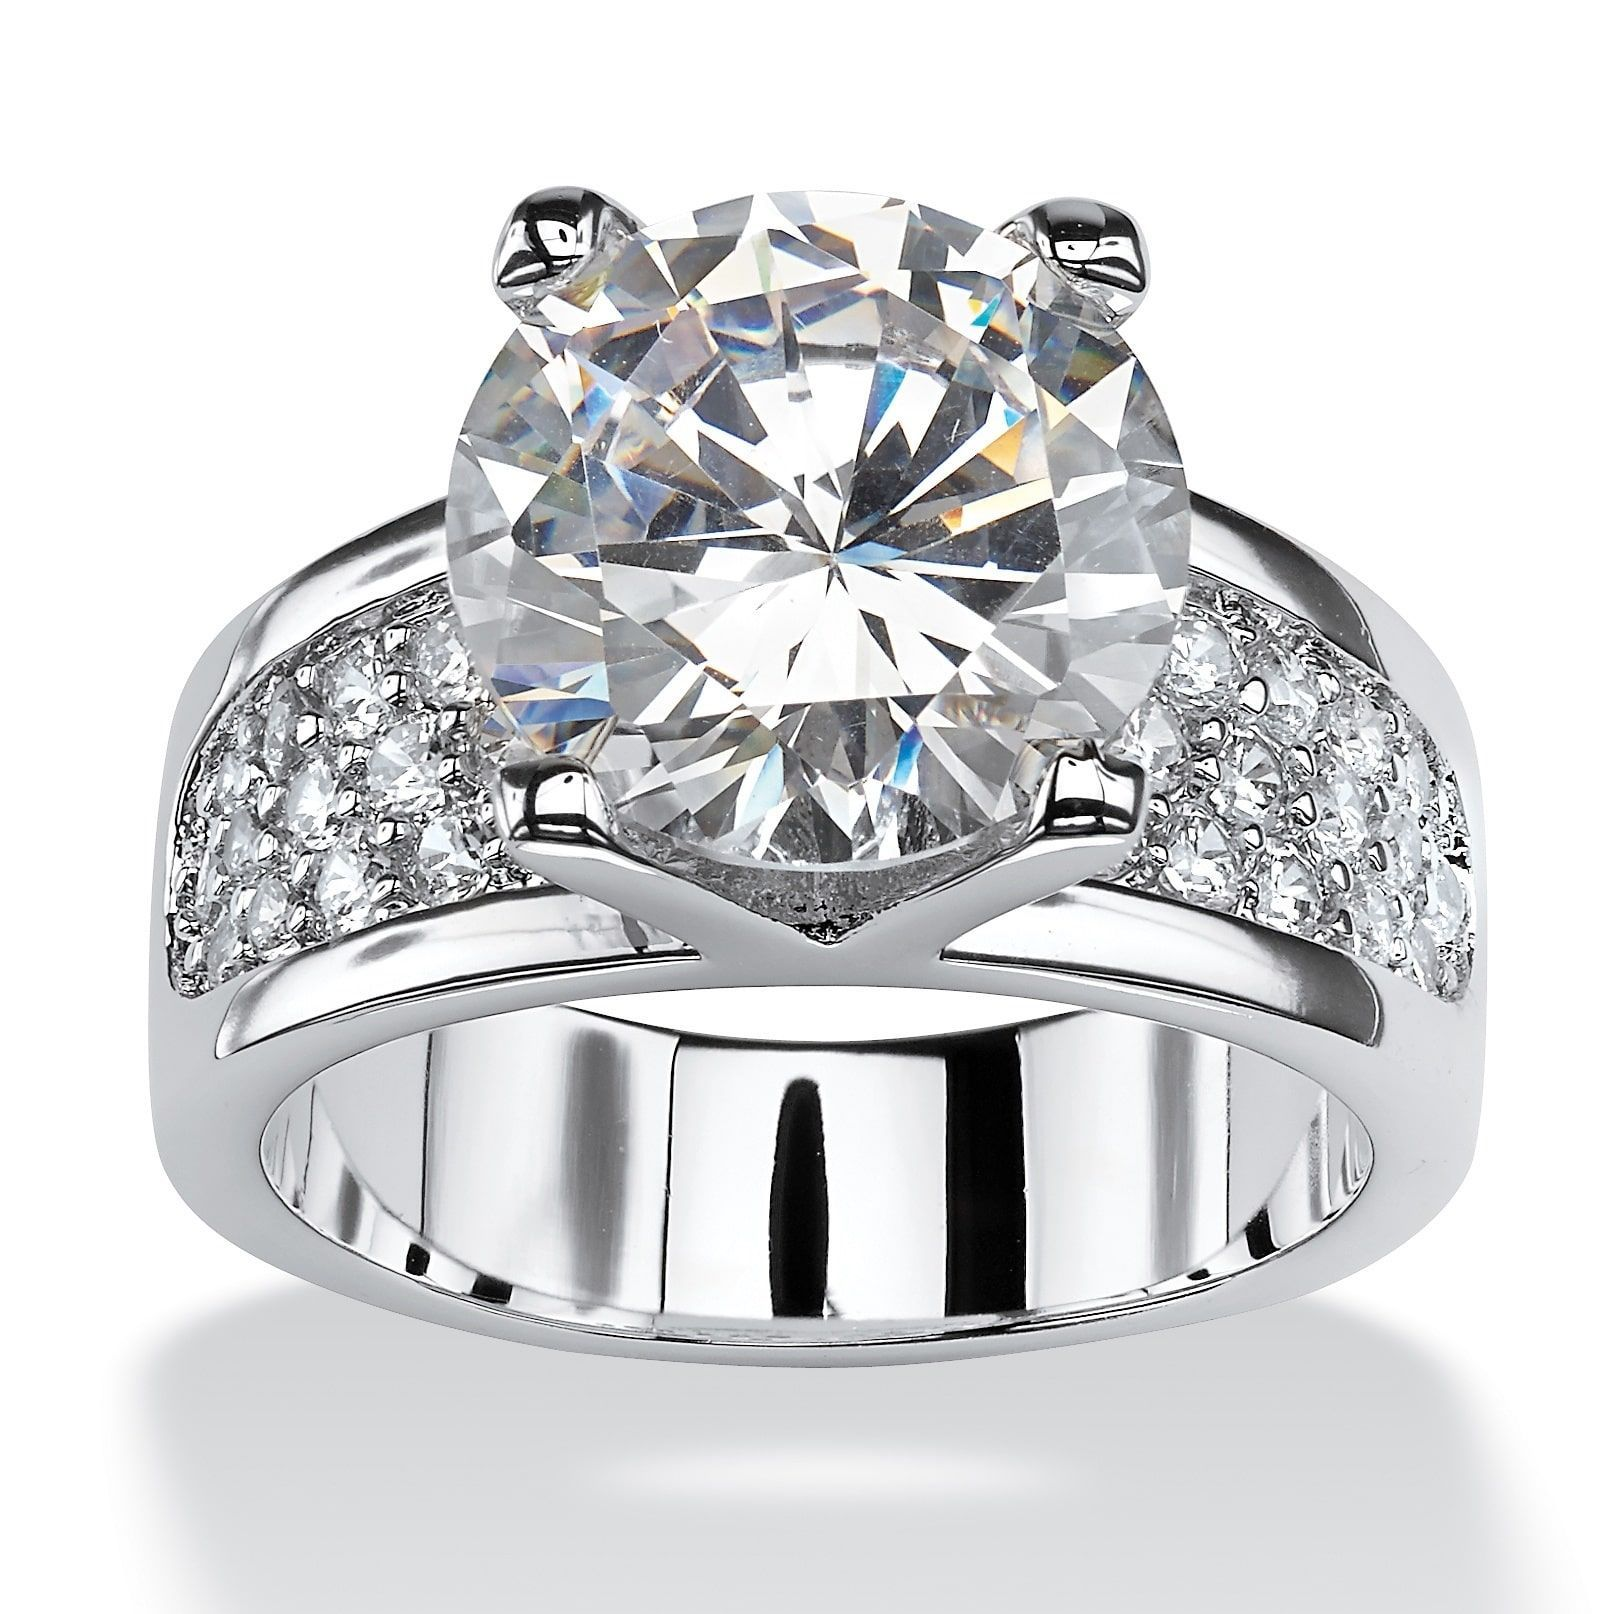 35+ Palm beach jewelry engagement rings information